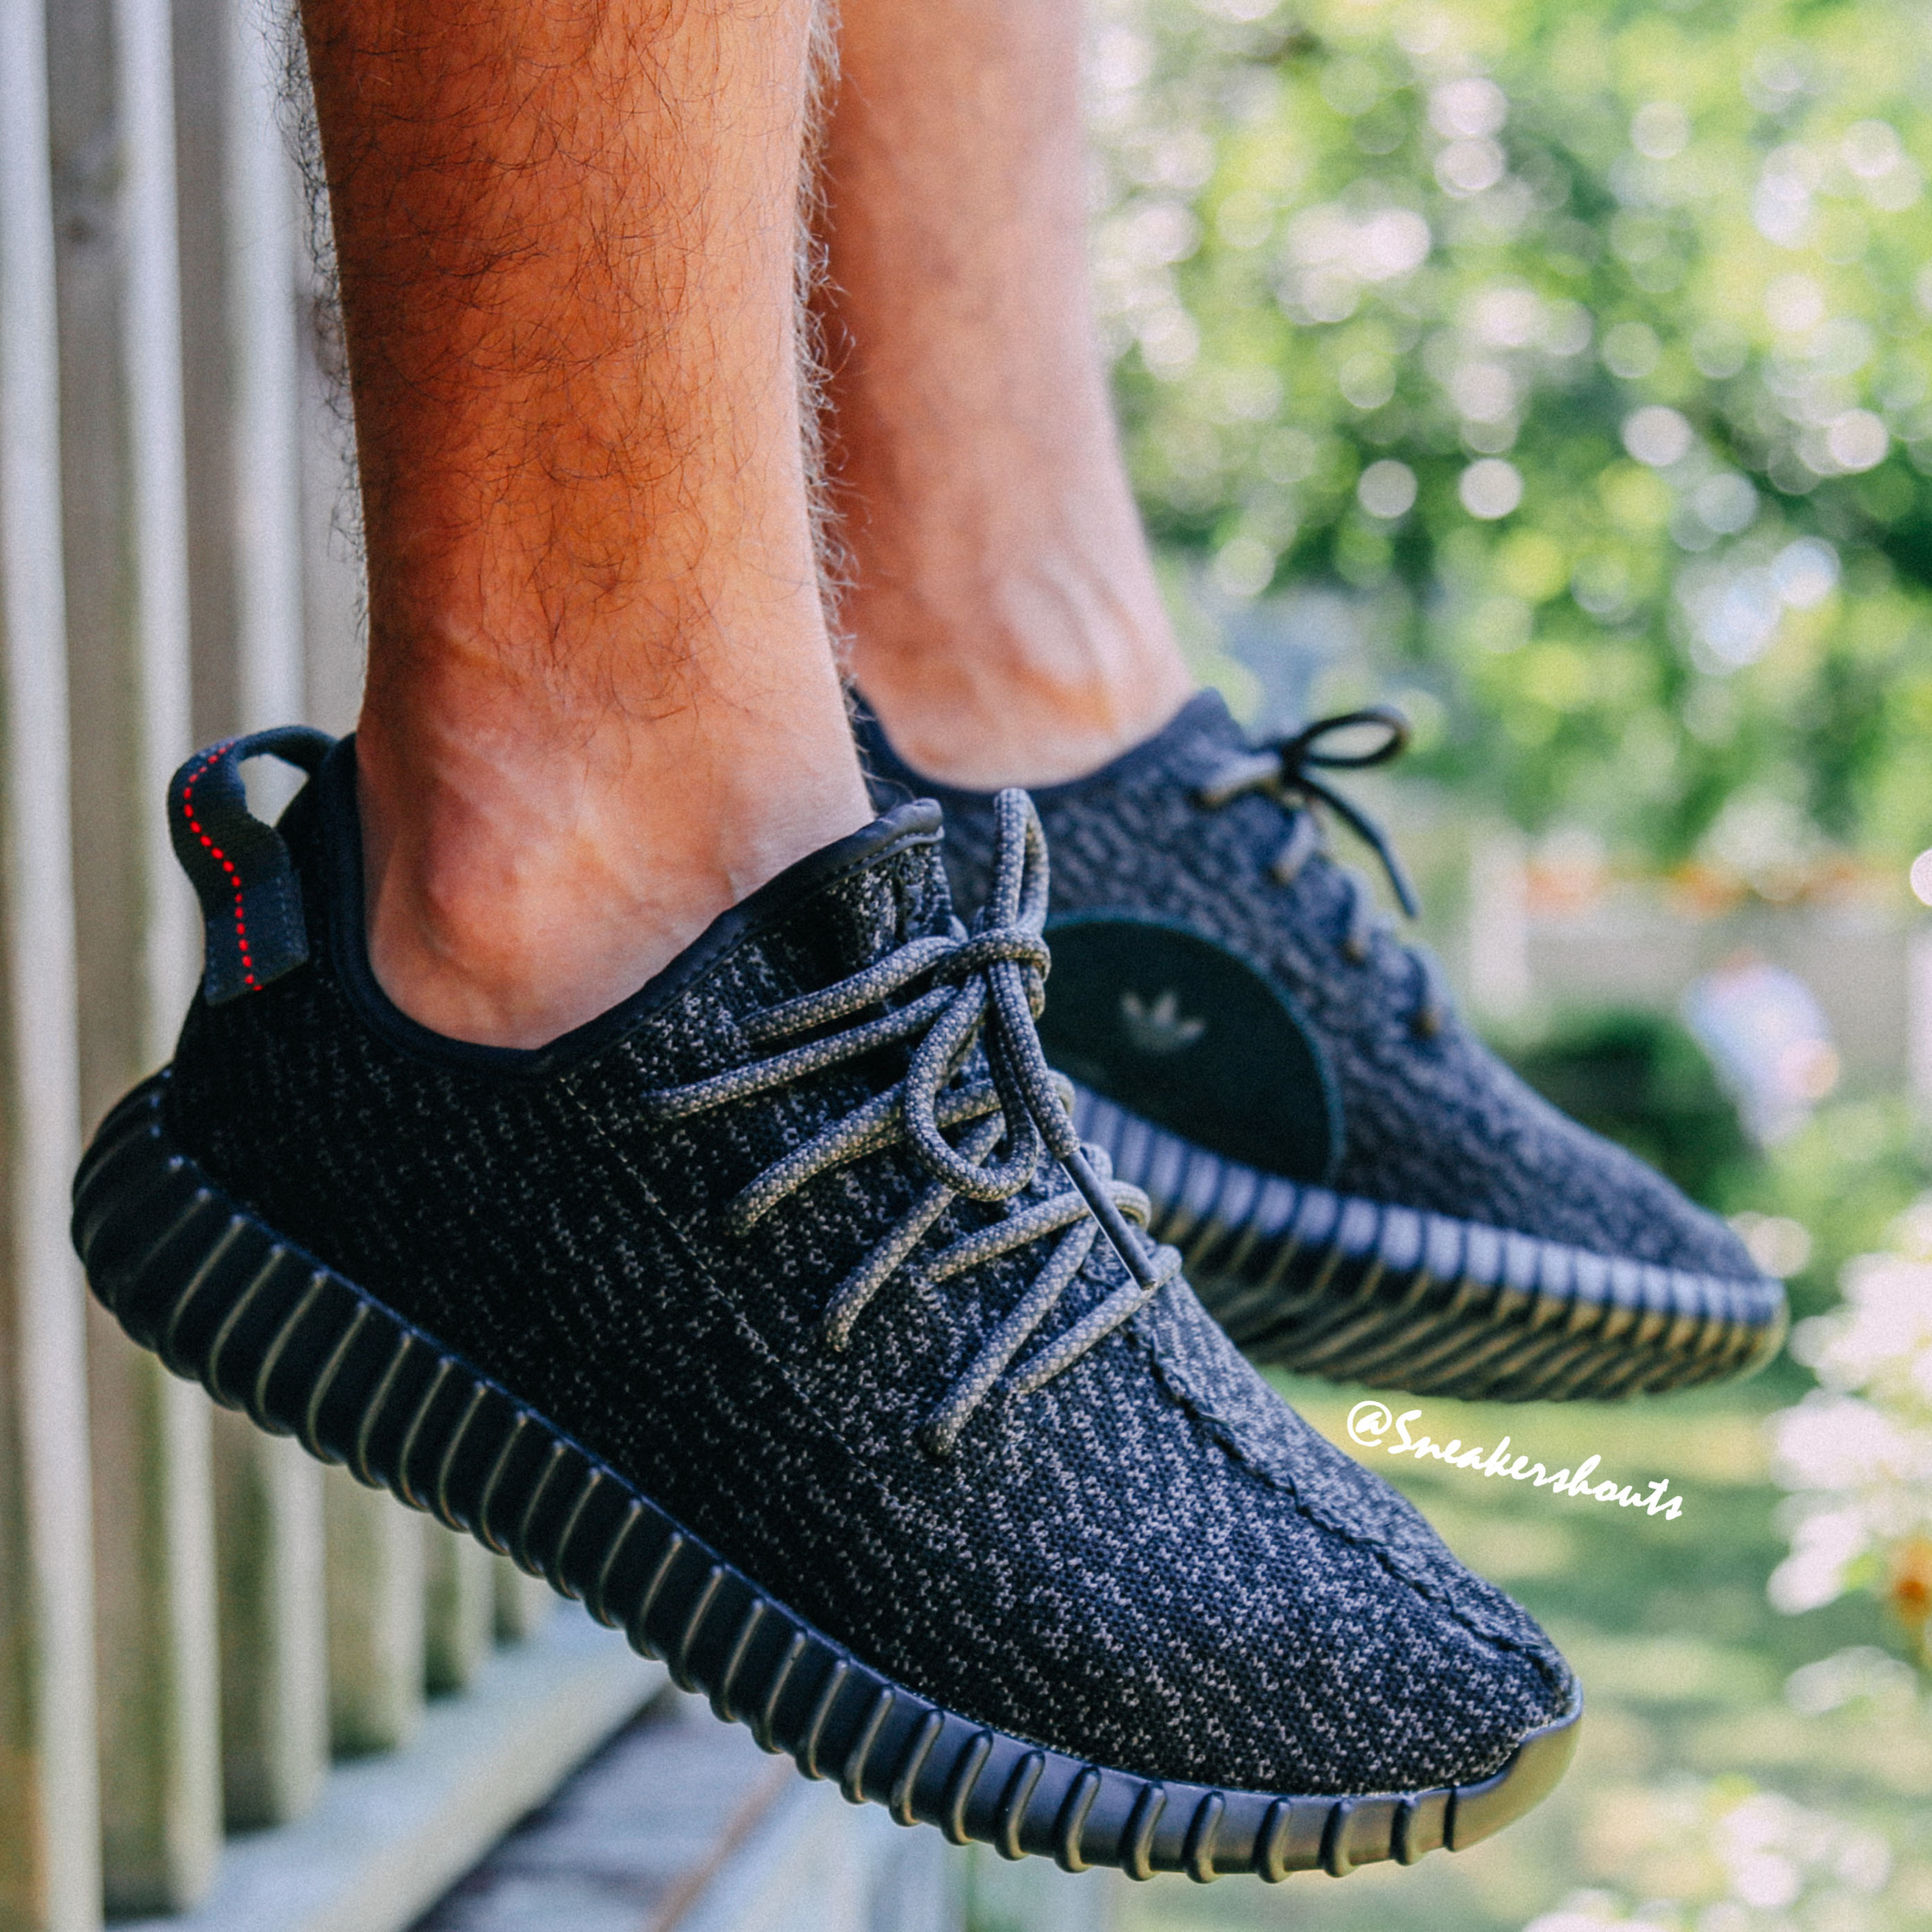 Adidas-Yeezy-350-Boost-Low-Black-4.jpg